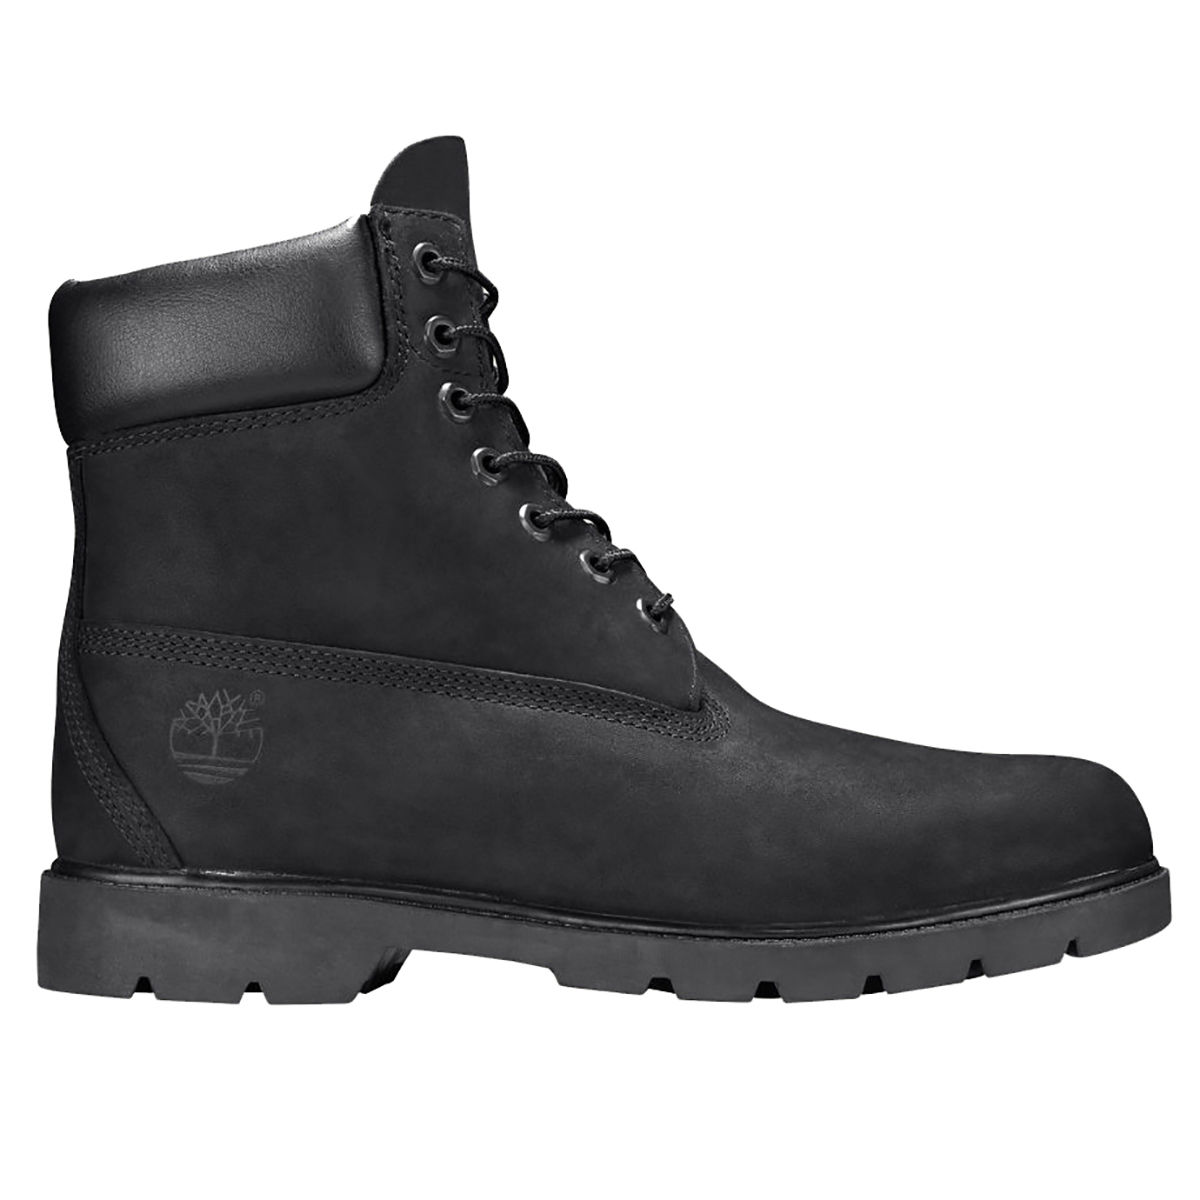 "Timberland Mens 6"" Waterproof Boot with Padded Collar"